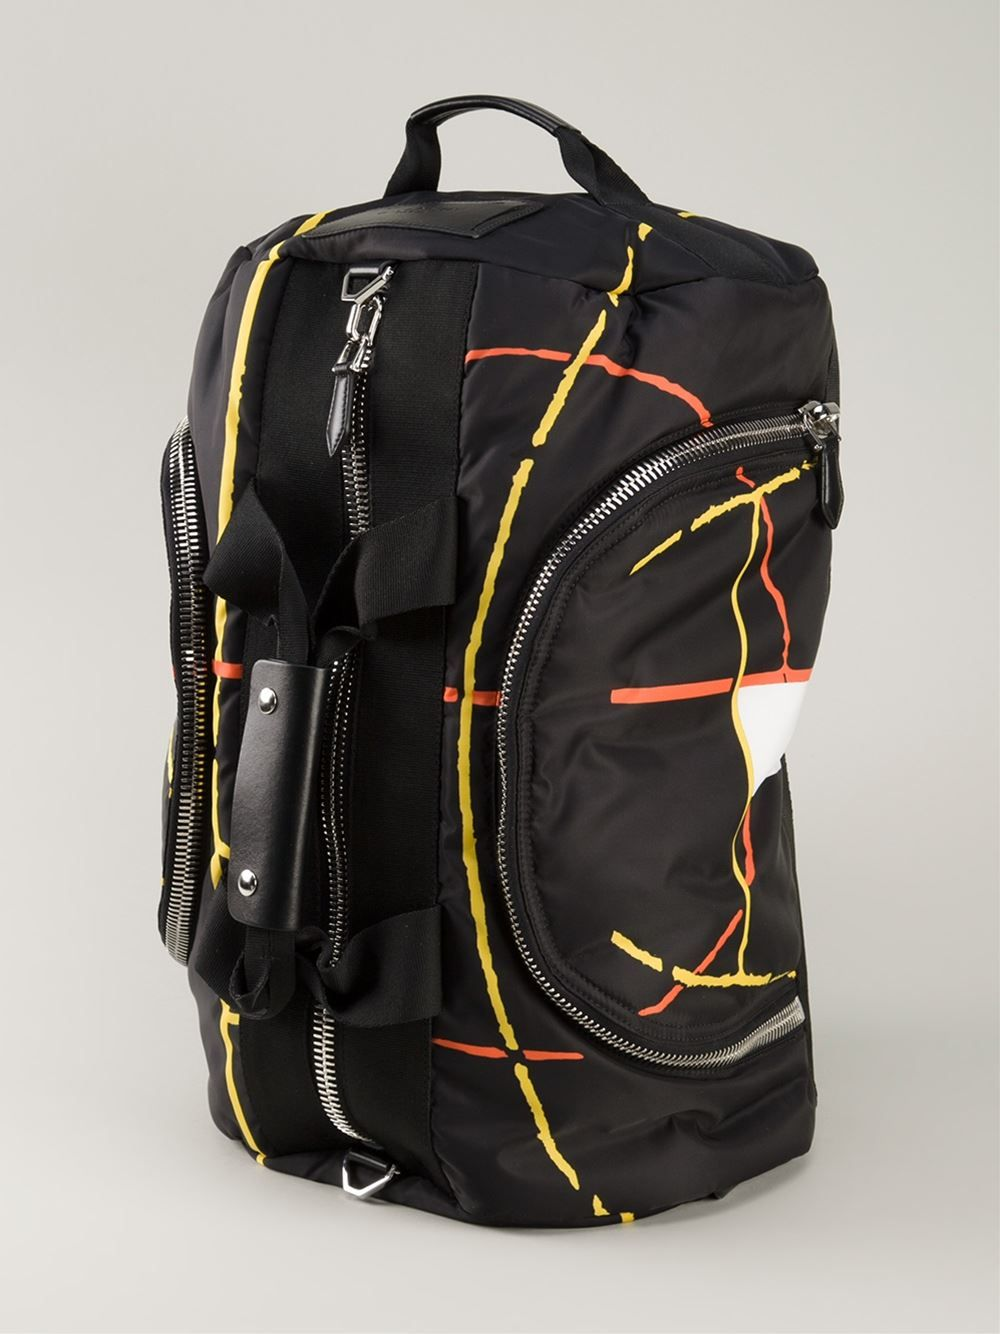 1f44d60c9de4 Givenchy Duffle Backpack - The Webster - Farfetch.com